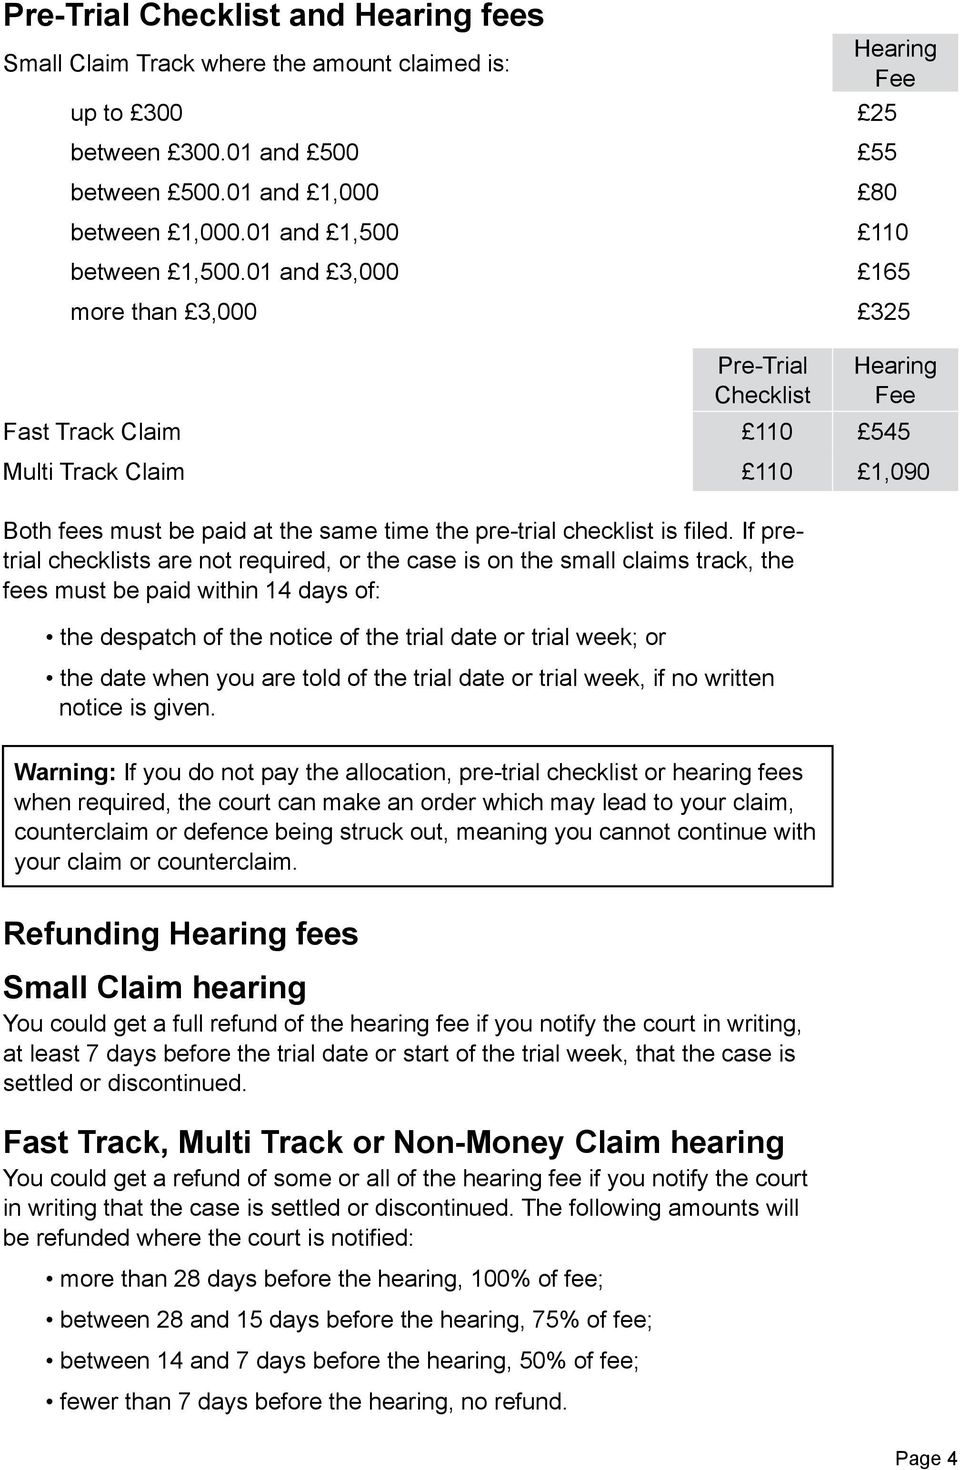 01 and 3,000 165 more than 3,000 325 Pre-Trial Checklist Hearing Fee Fast Track Claim 110 545 Multi Track Claim 110 1,090 Both fees must be paid at the same time the pre-trial checklist is filed.